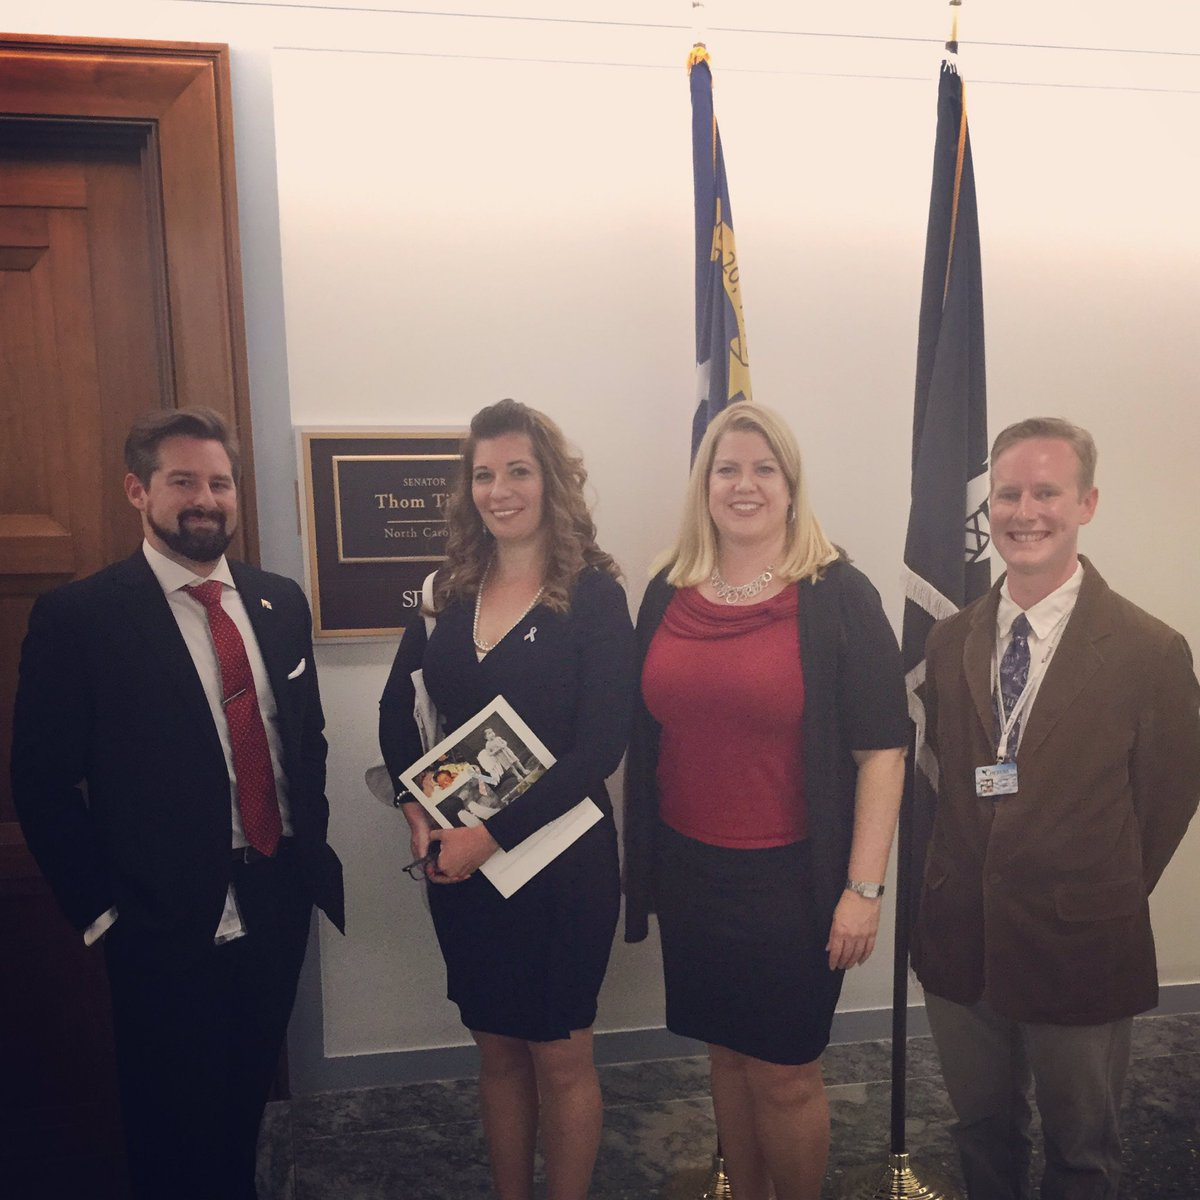 Had a great time talking with @MatthewJFlynn in @SenThomTillis' office raising #CDHAwareness https://t.co/BFhBjhGcCN